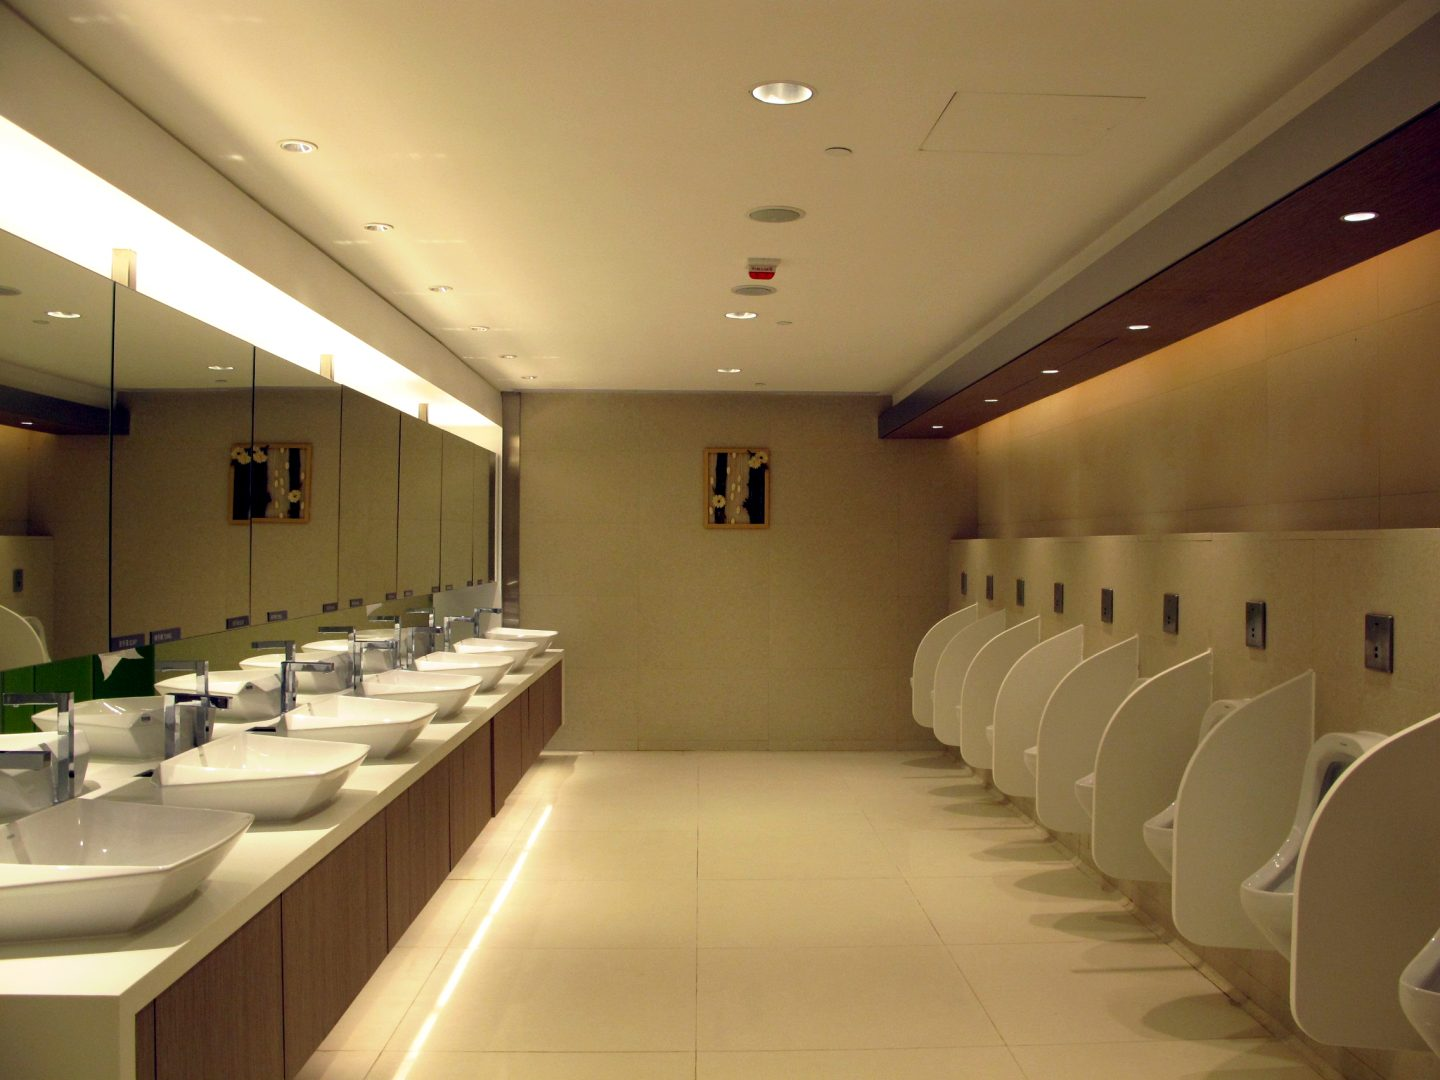 Washroom Cleaning Services Manchester